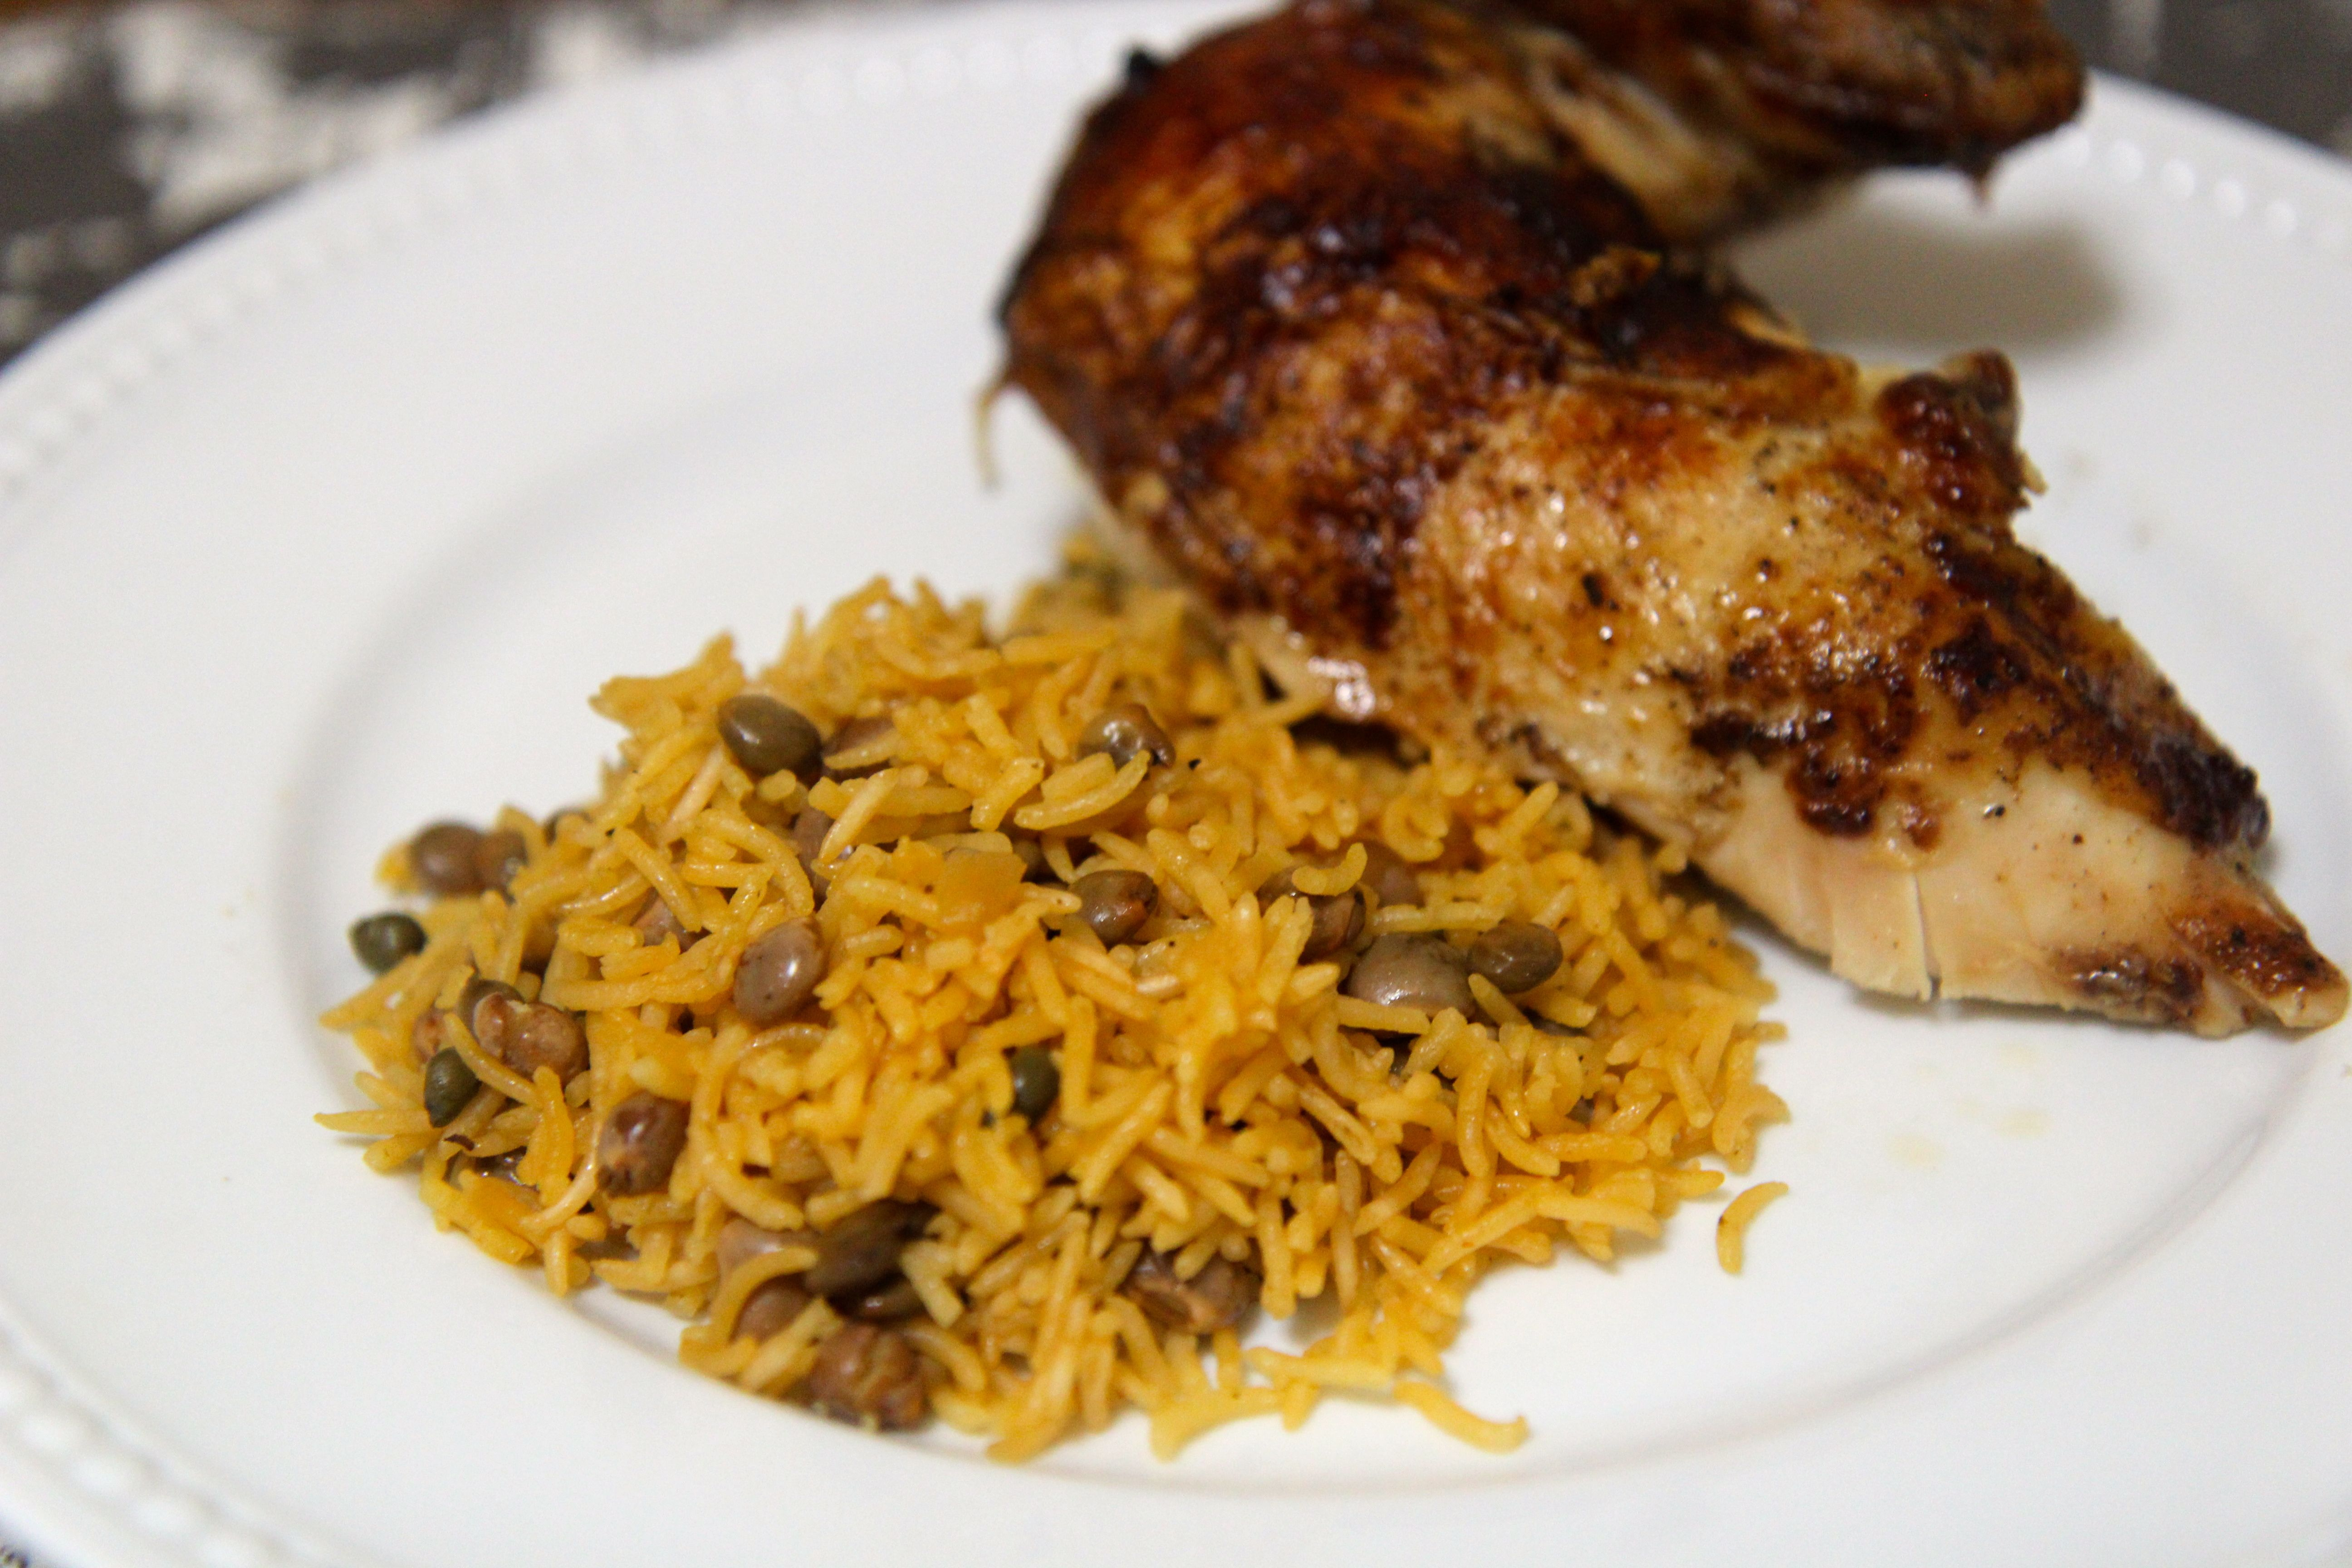 This Arroz con Gandules or Rice & Pigeon Peas recipe is a great dish to serve for the holidays.